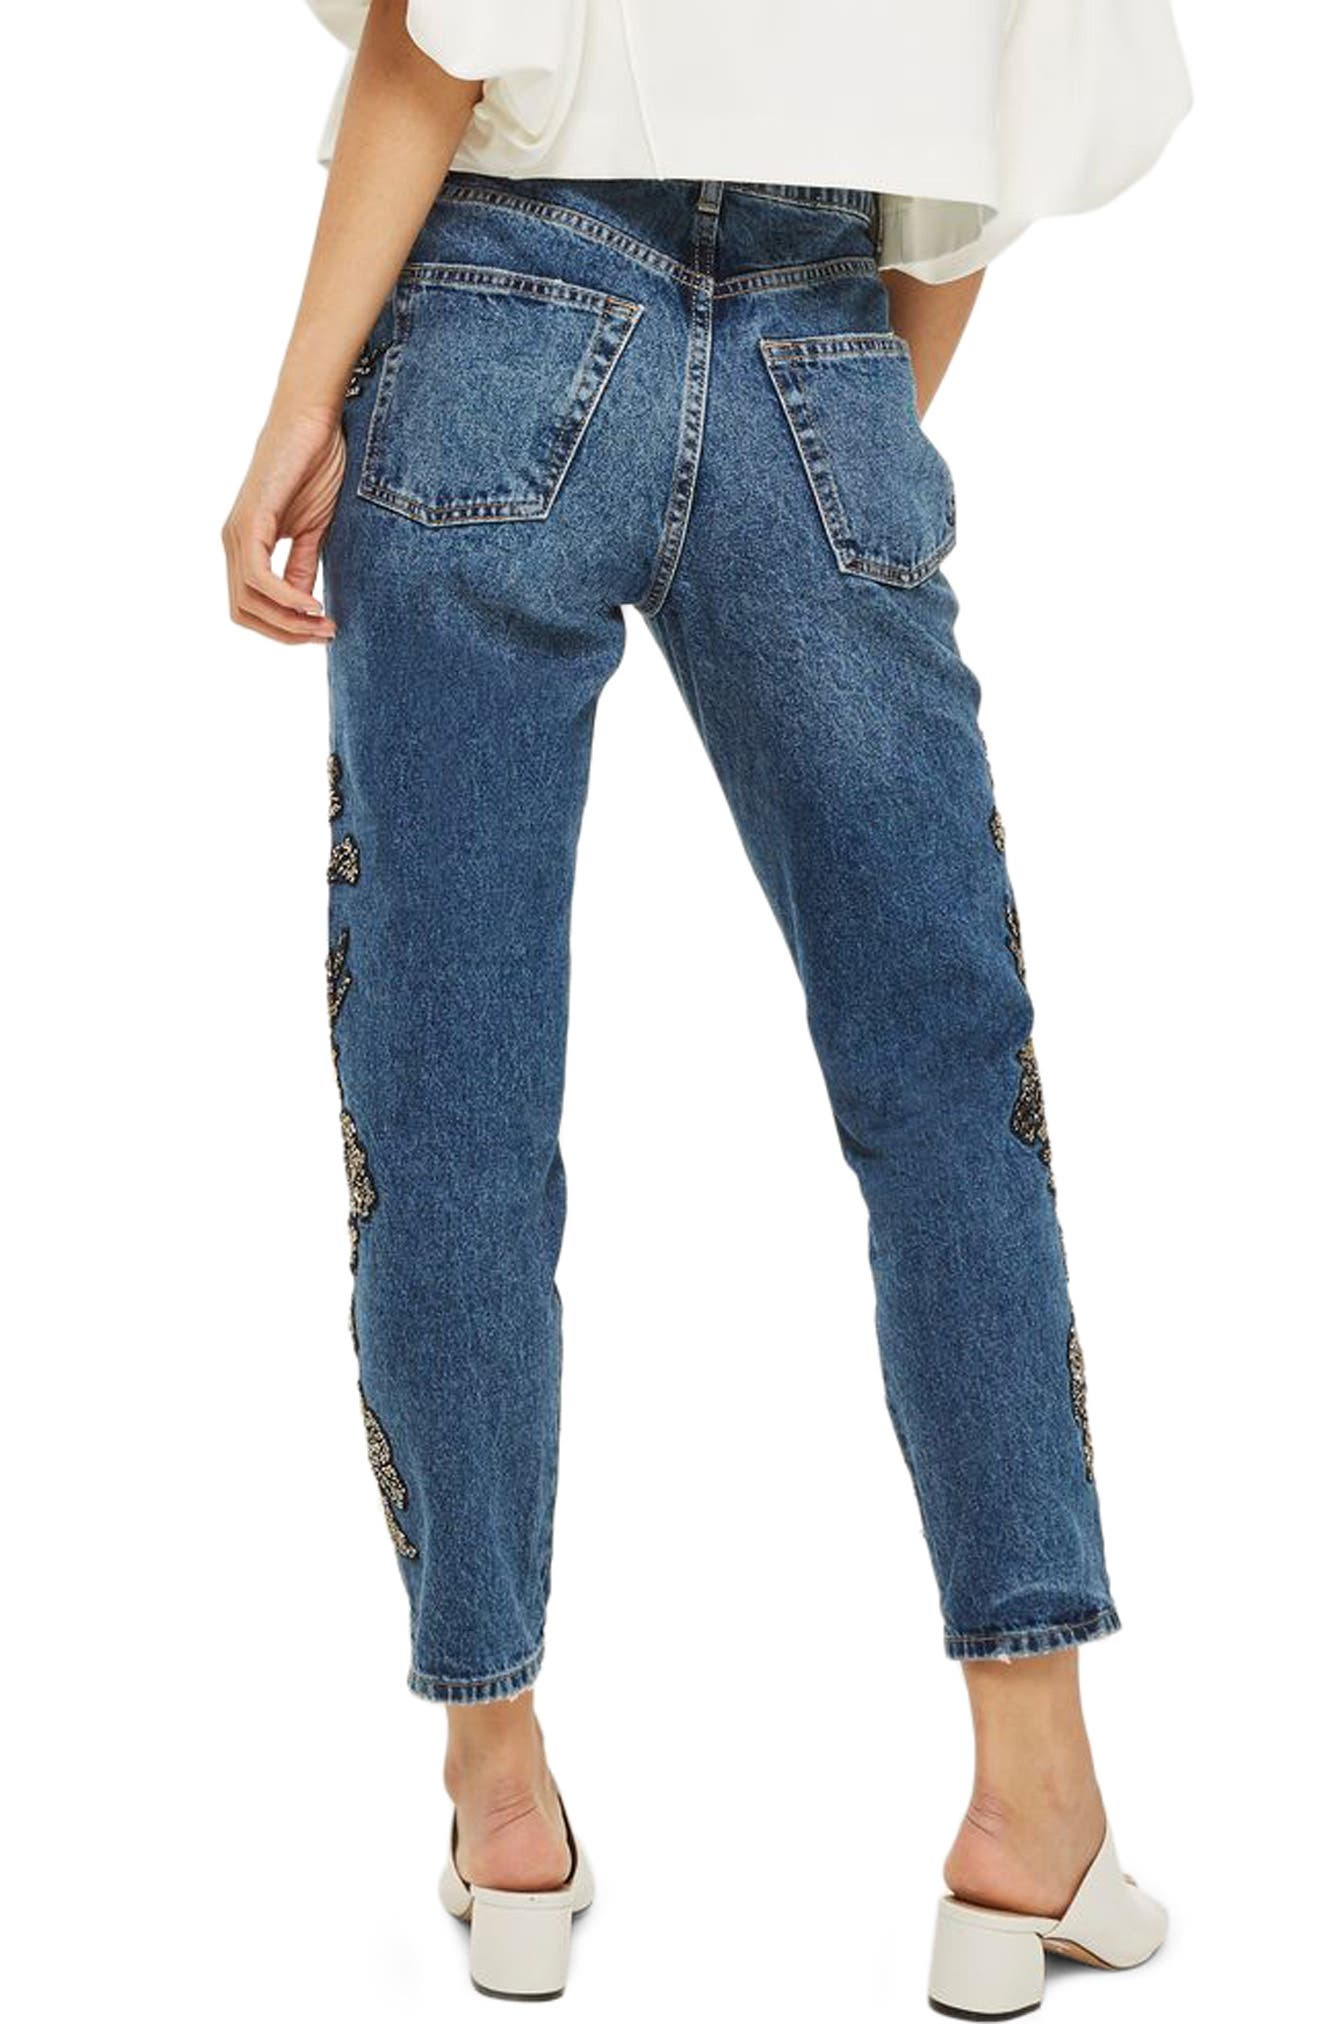 English Flower Embellished Mom Jeans,                             Alternate thumbnail 2, color,                             401